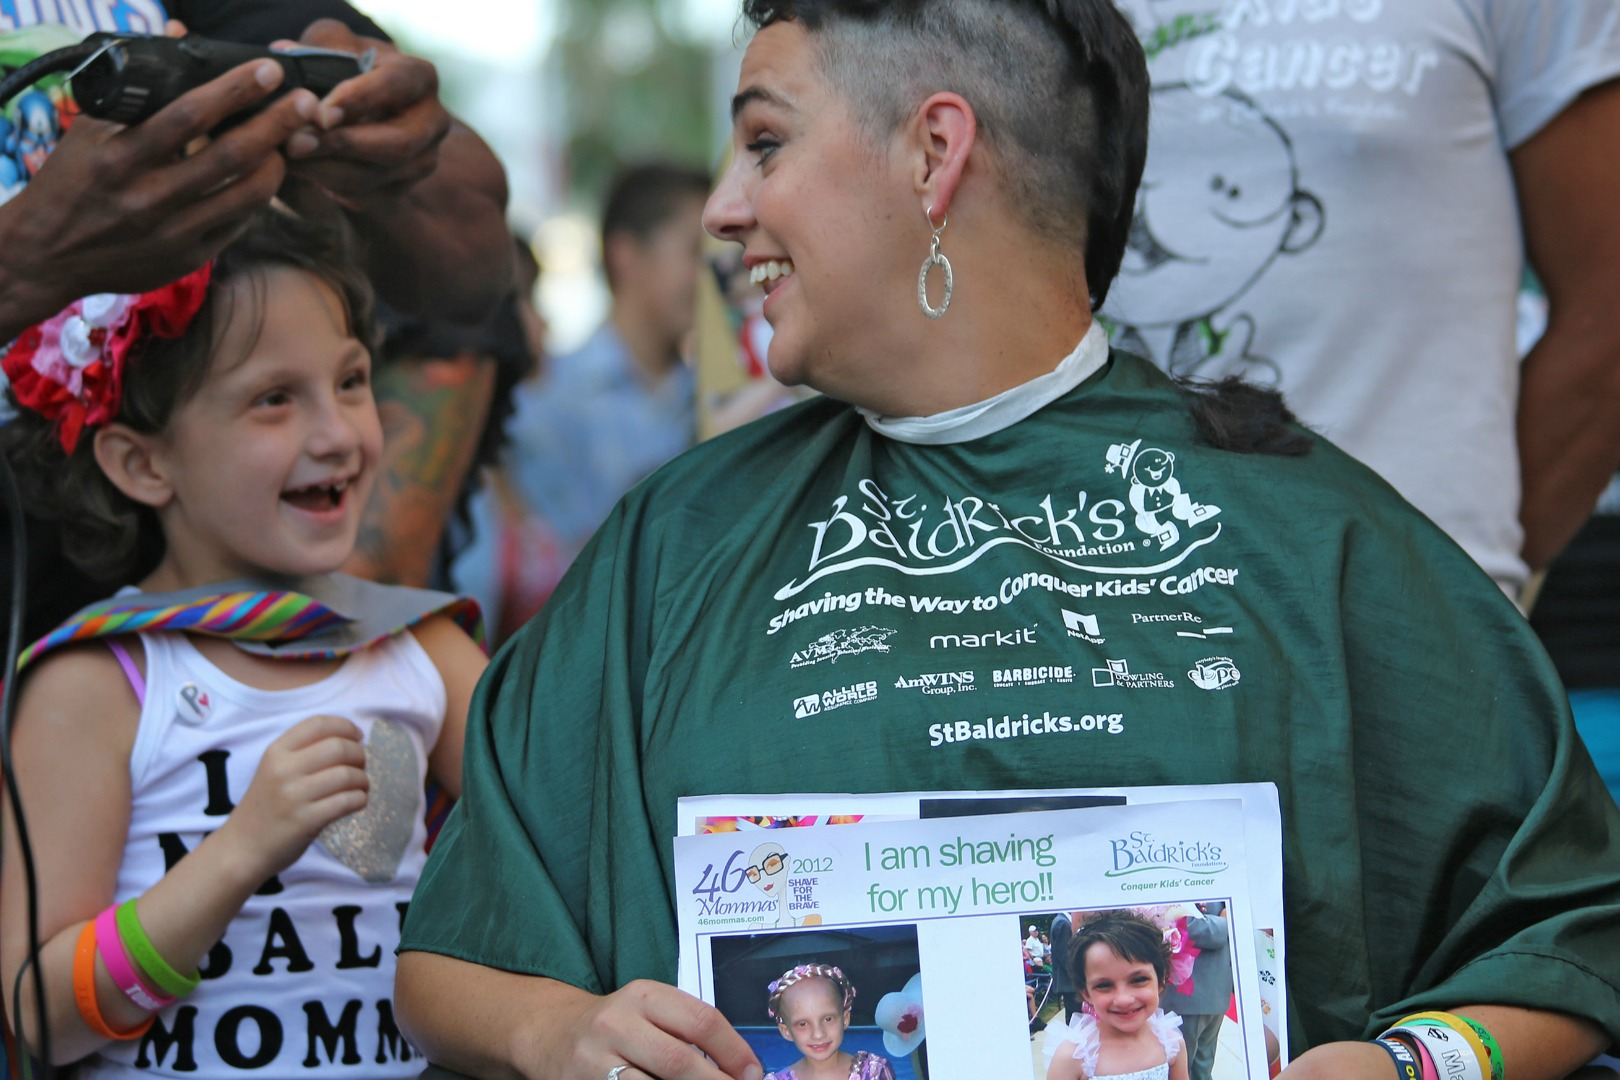 46-Mommas-mother-and-daughter-childhood-cancer-head-shaving